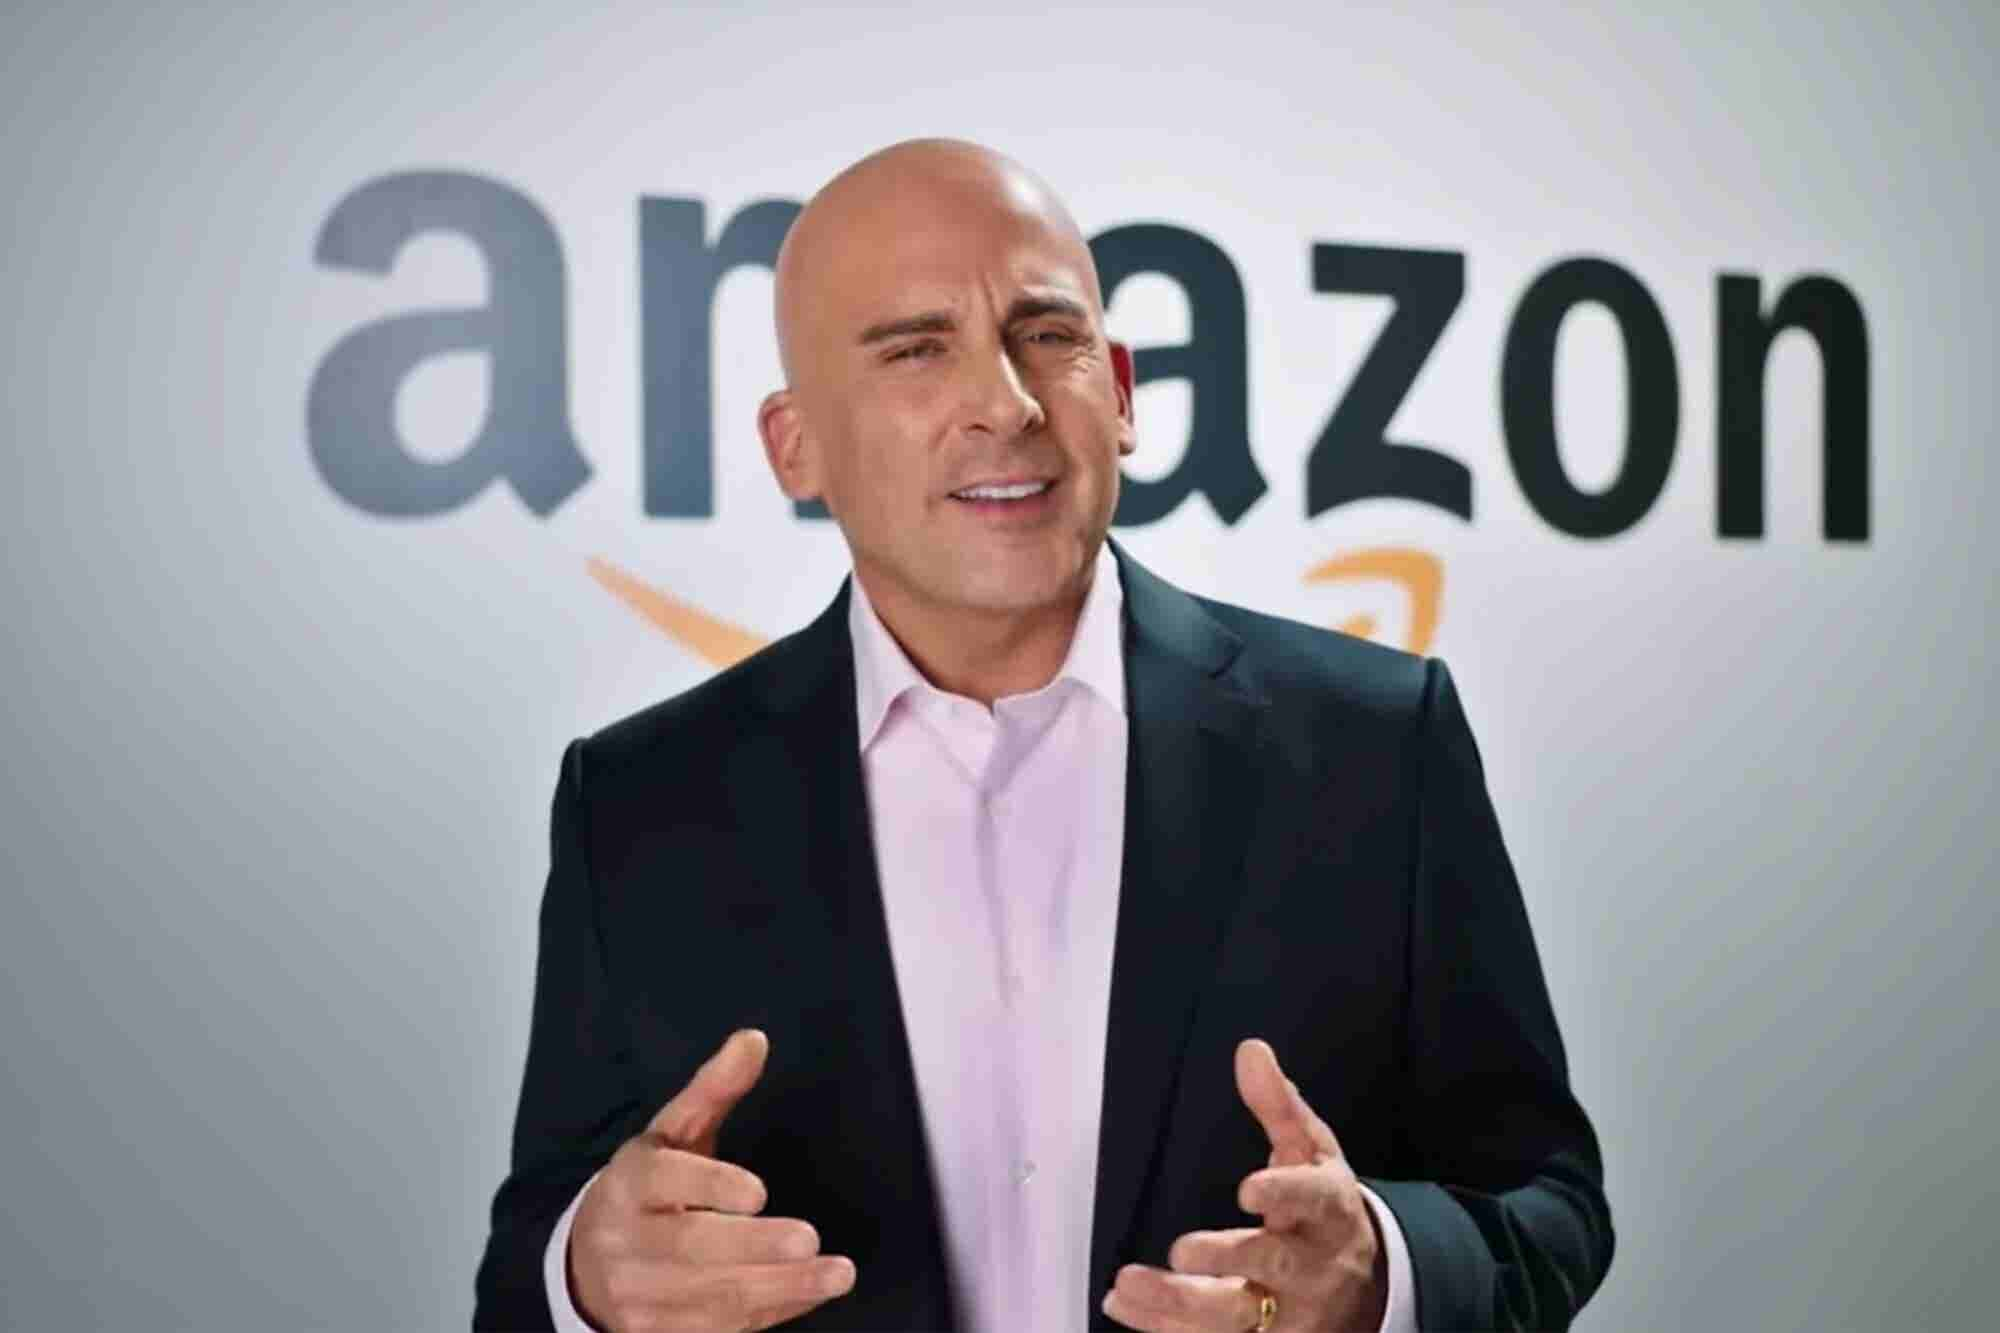 Amazon's Jeff Bezos Gets the SNL Treatment